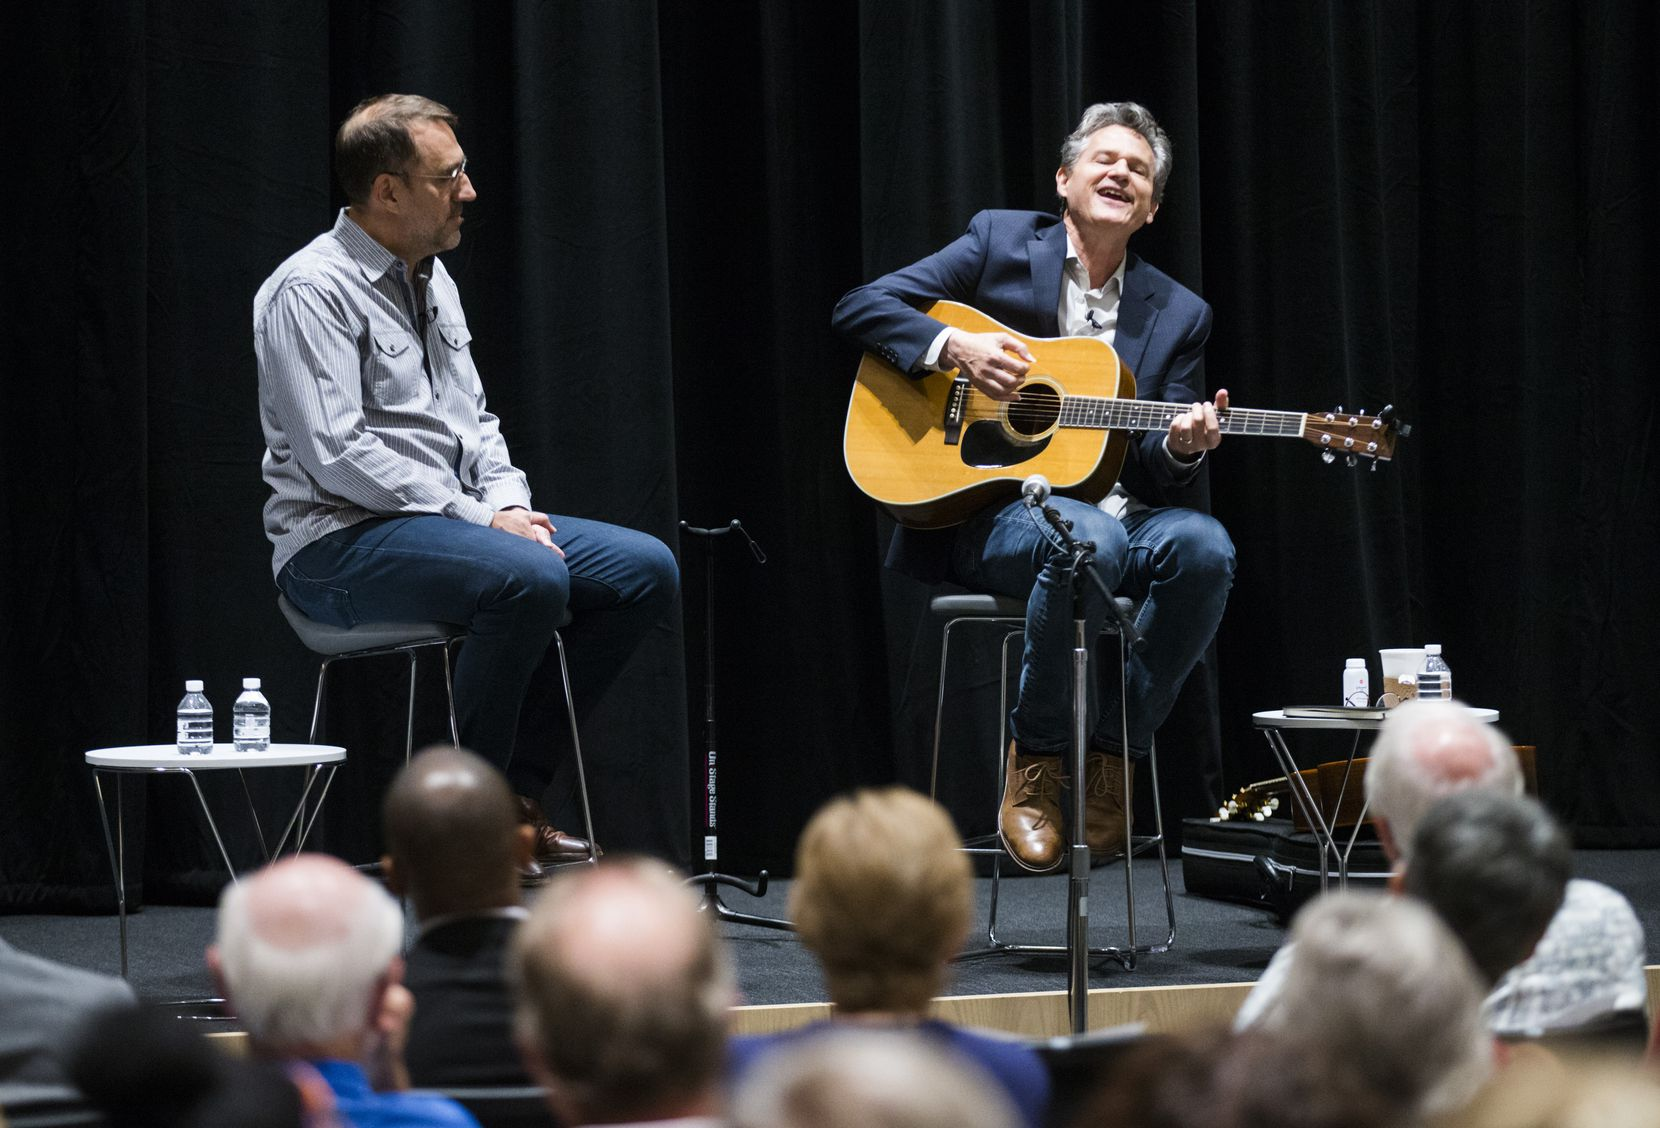 Billy Crockett, right, singer, songwriter and creative director of Blue Rock Studio in the Texas Hill Country, and Mike Wilson, left, editor of 'The Dallas Morning News,' participate in a 'Duets' subscriber event on October 1, 2019 at 'The Dallas Morning News'